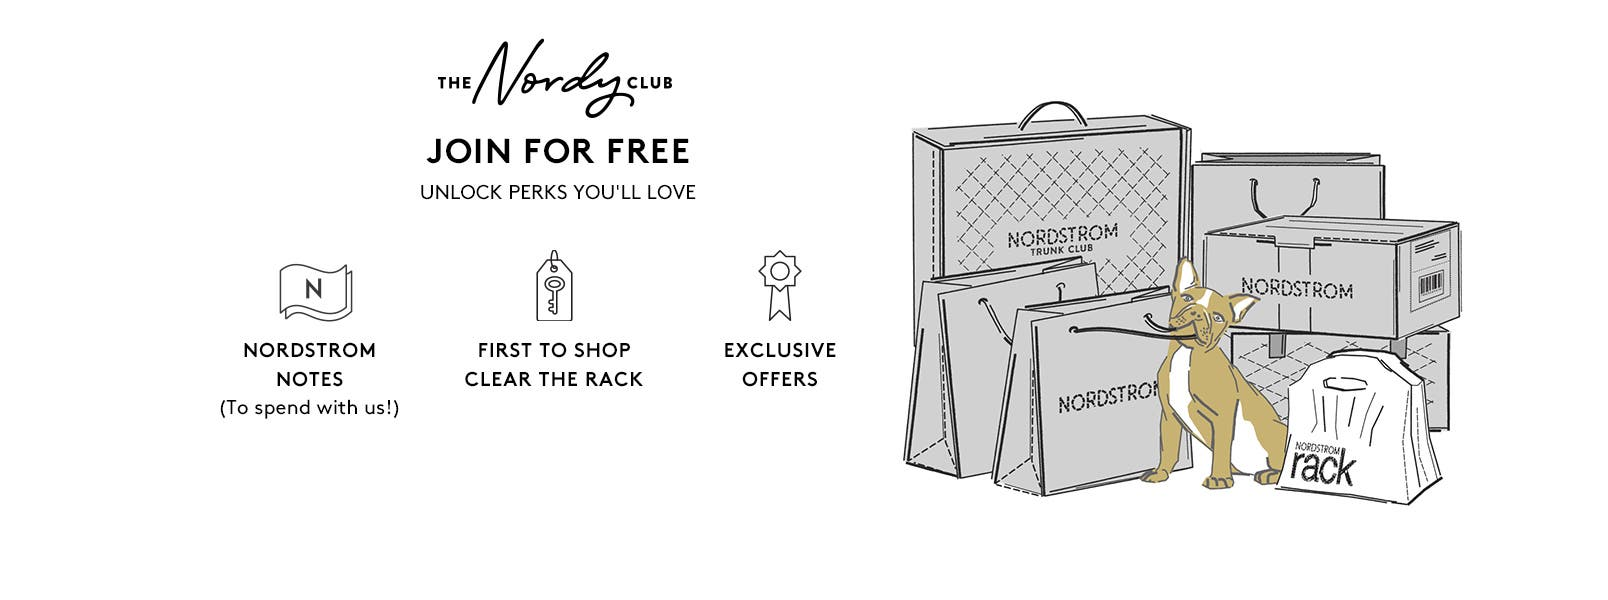 Join The Nordy Club for free to get Nordstrom Notes, First to Shop Clear the Rack access, and exclusive offers. Click to Join Now.